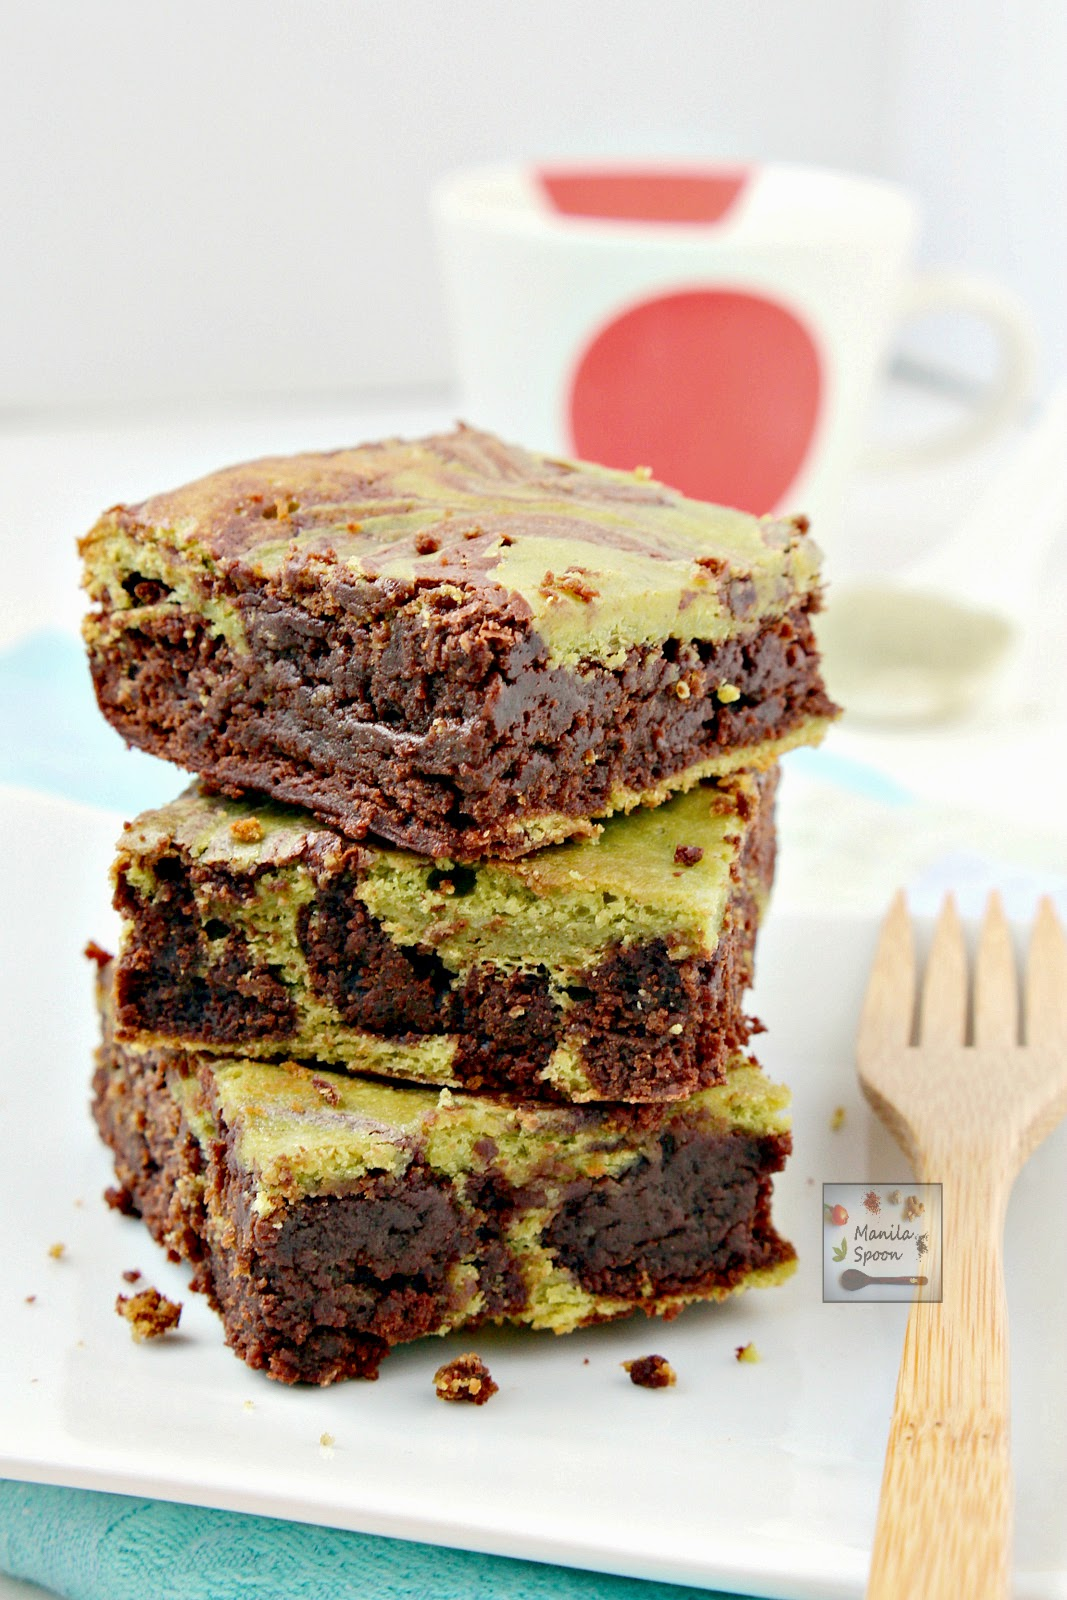 Matcha Green Tea provides a lovely contrast of flavors and colors in this delicious and fudgy brownies.